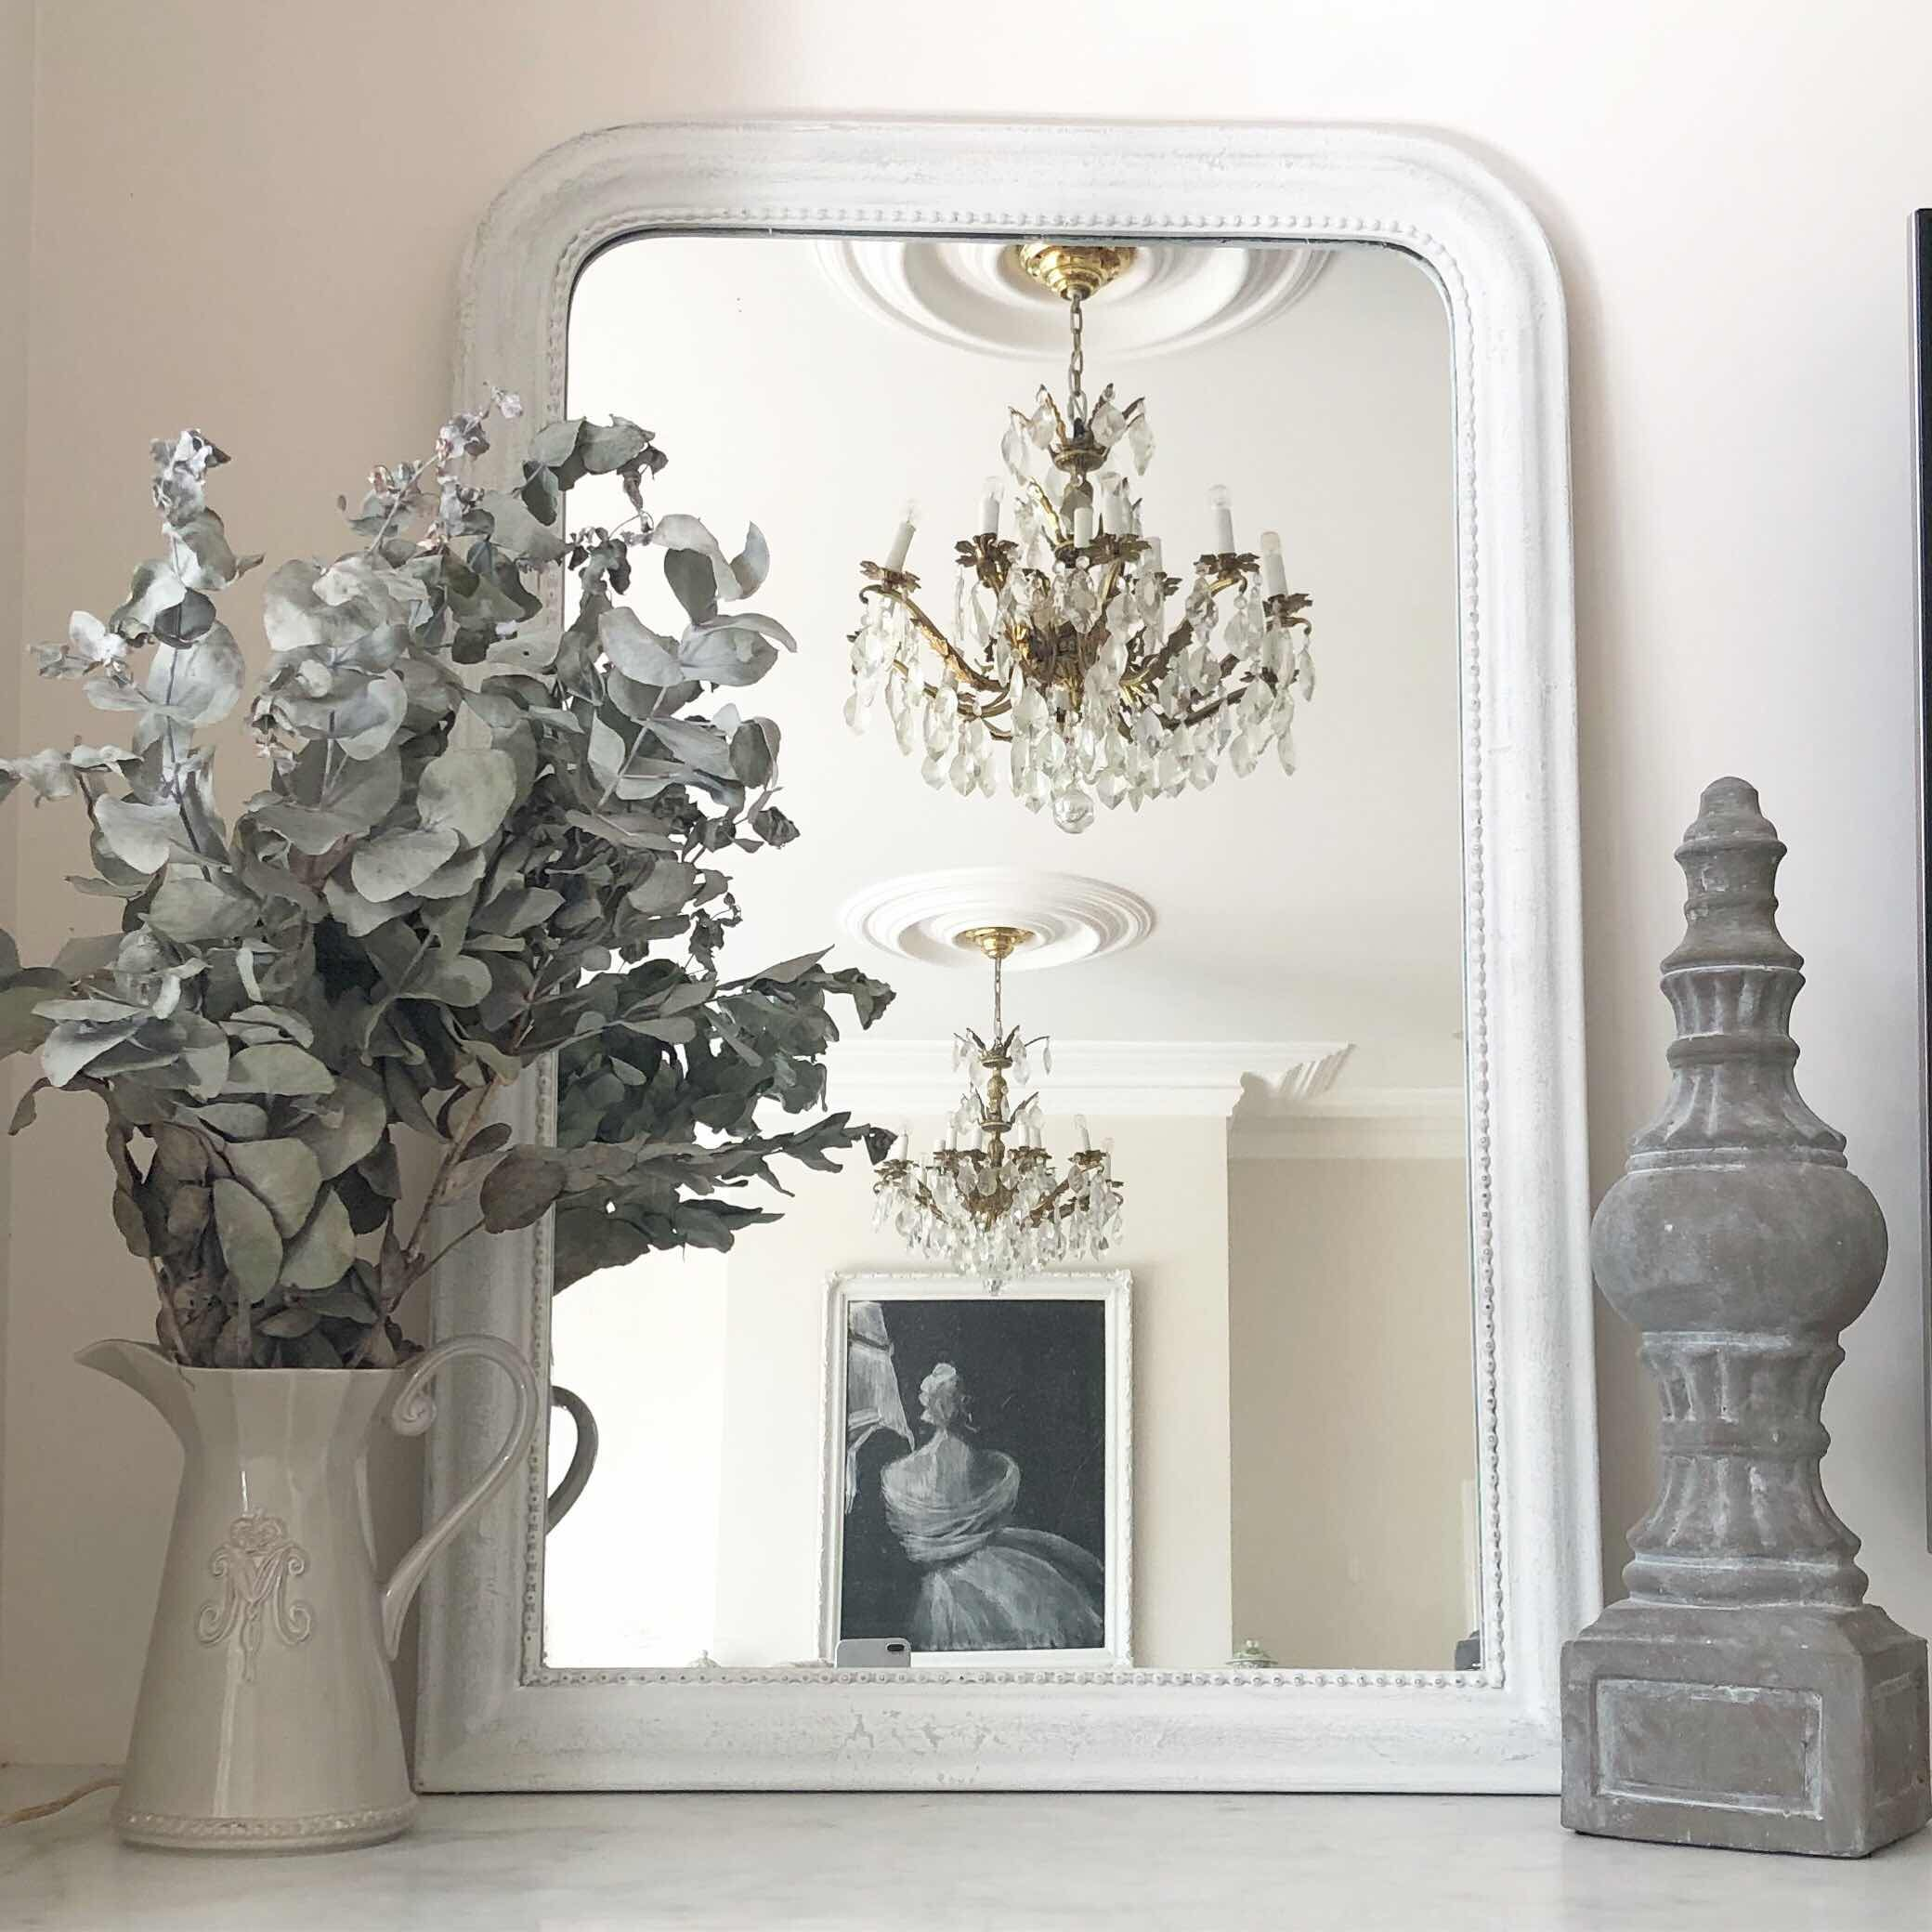 Looking for a vintage mirror? | Vintage furniture for sale ...